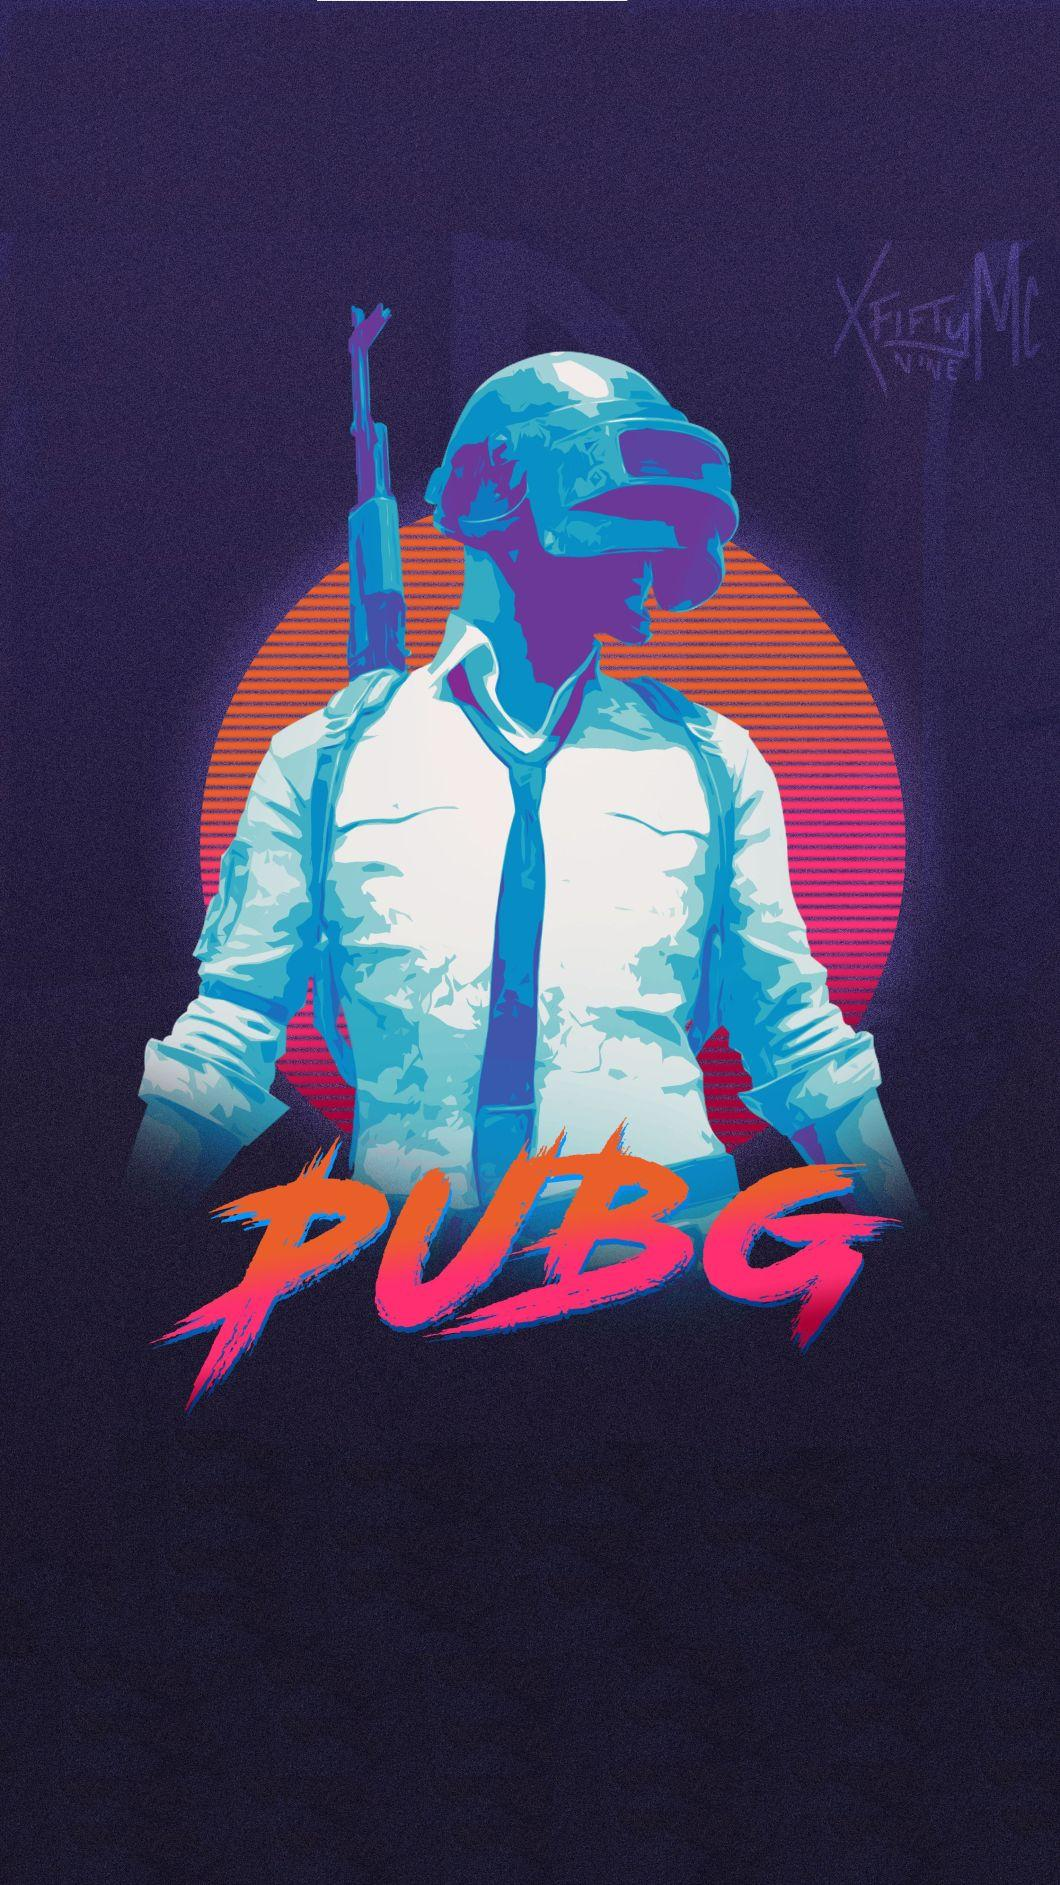 17 PUBG Mobile HD Wallpapers For iPhone, Android!